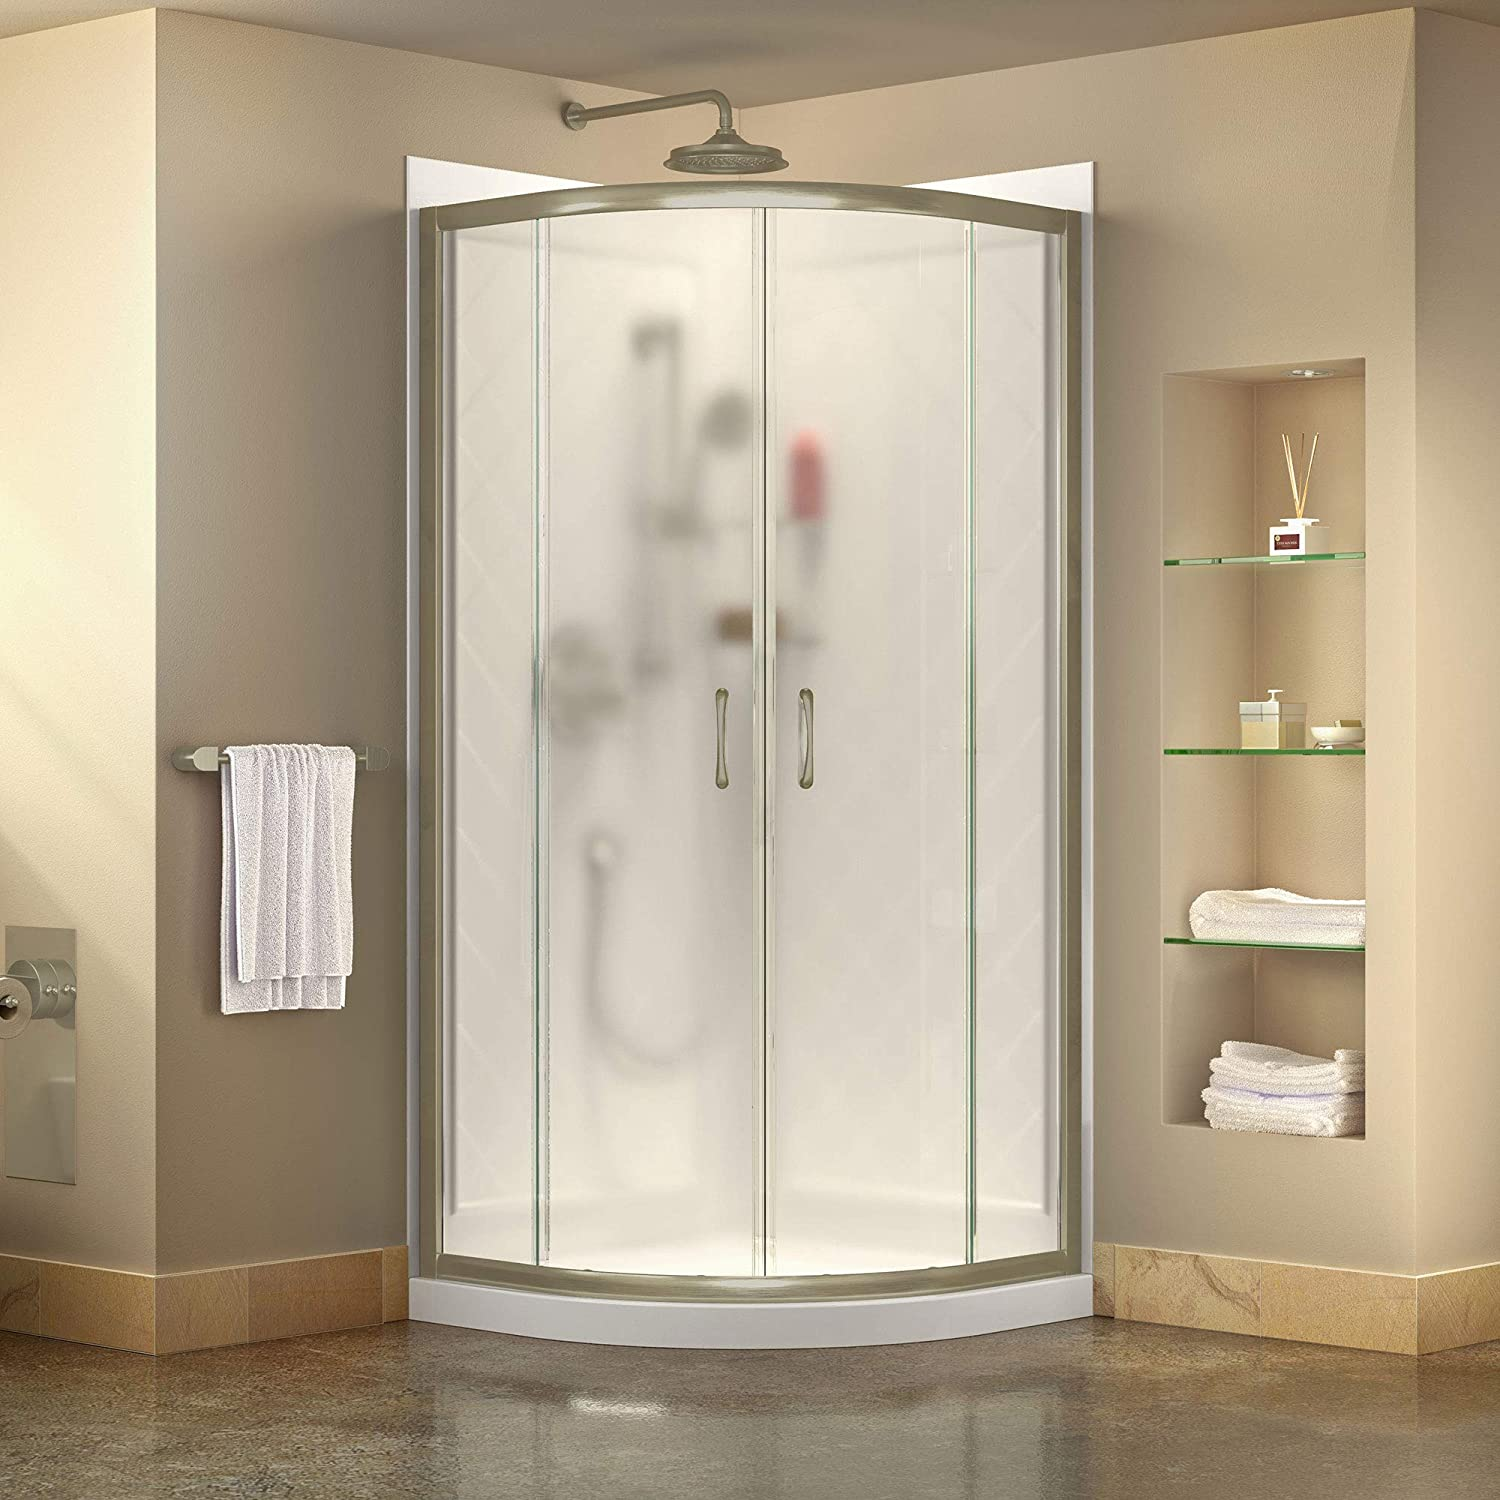 DreamLine Prime 33 in. x 76 3 4 in. Semi-Frameless Frosted Glass Sliding Shower Enclosure in Brushed Nickel with Base and Backwall